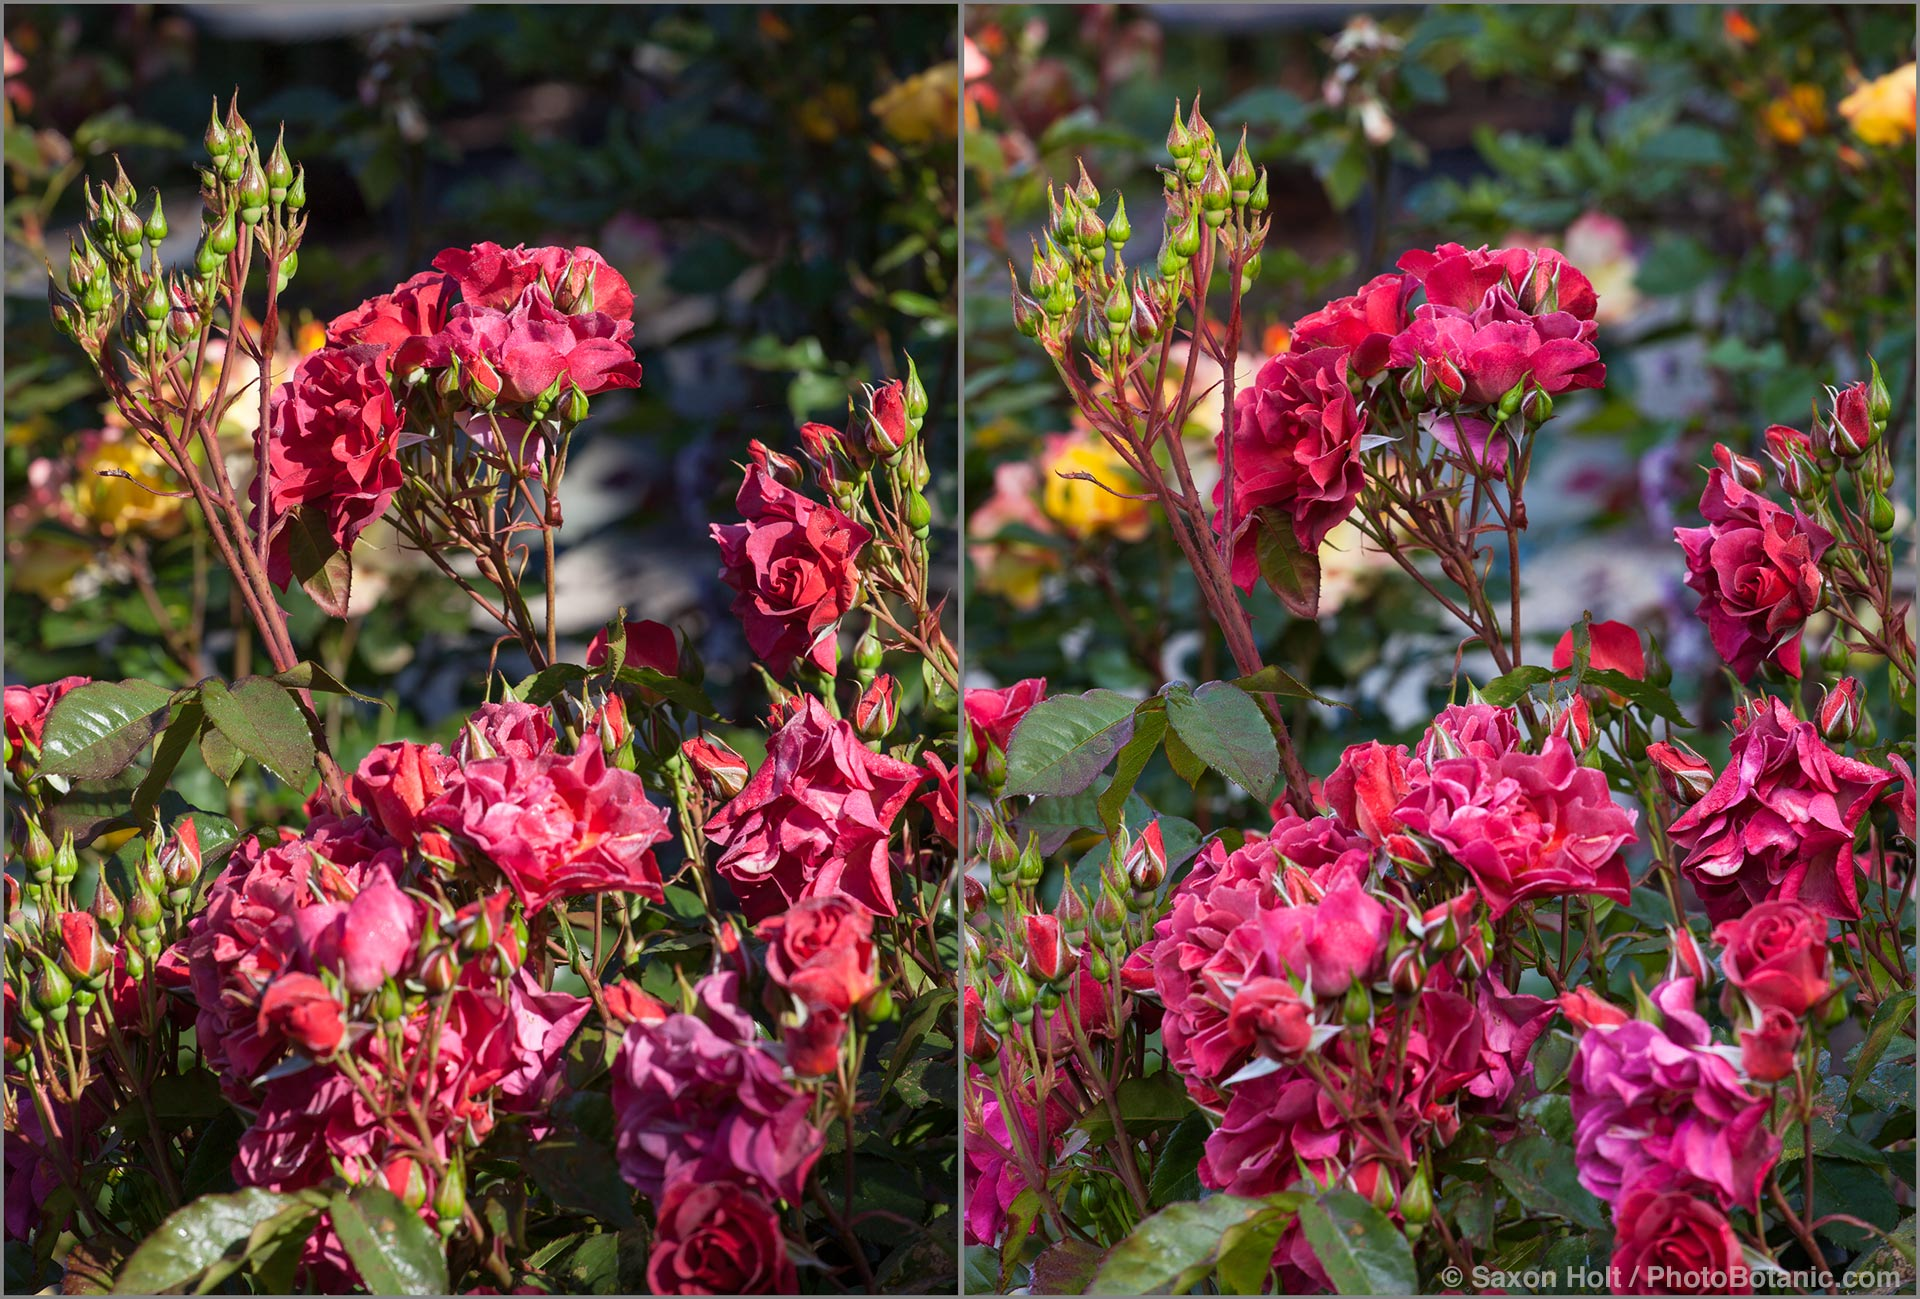 Bright sum on rose - sunlight sequence